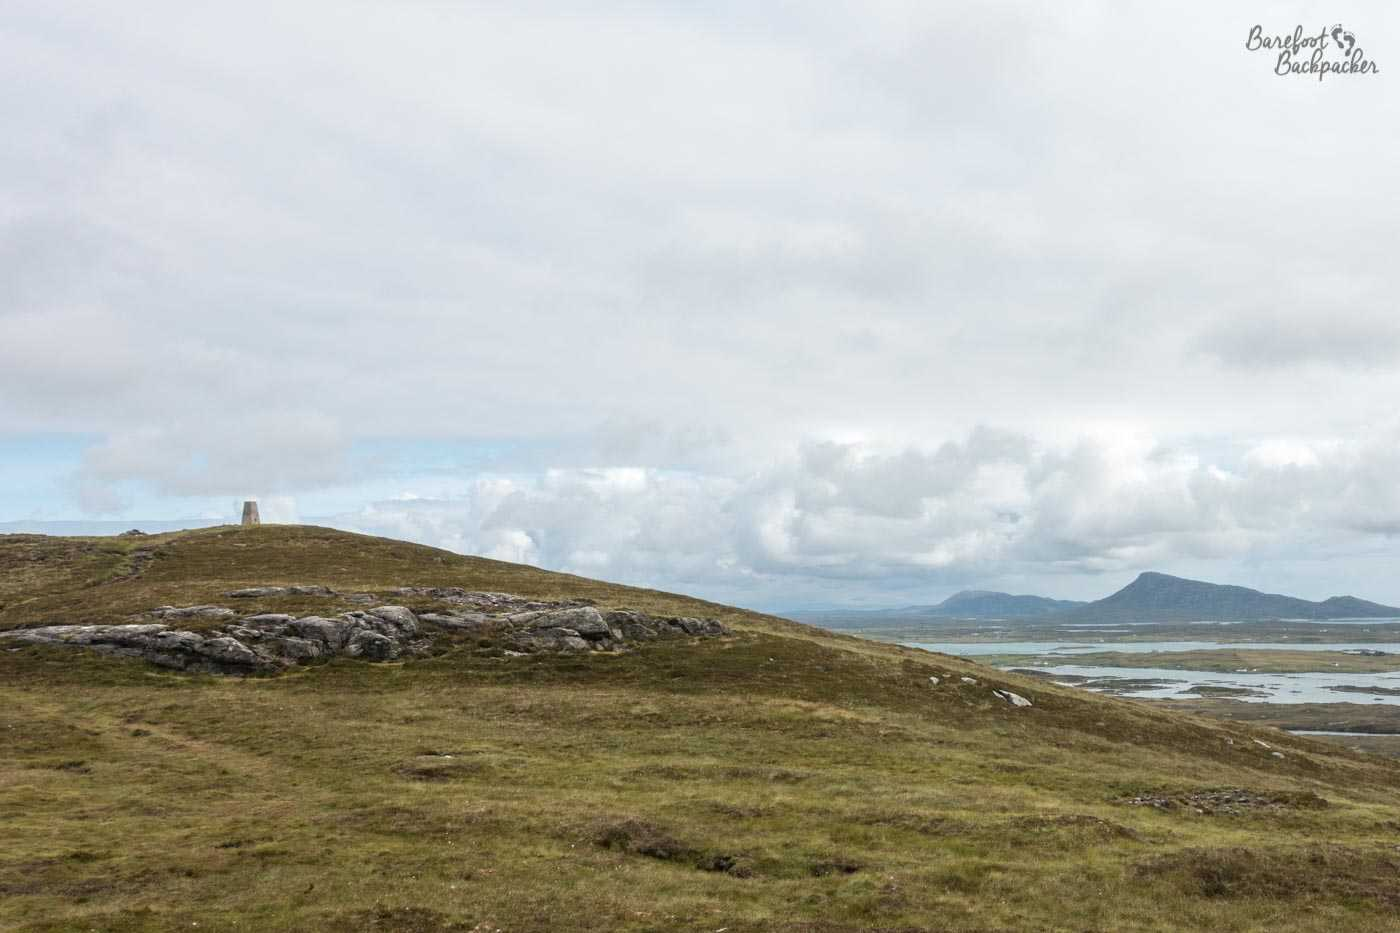 Benbecula's highest mountain, the 124m tall Ruabhal, as seen from, well, not much below the summit. Because it's 124m tall. My house in Kirkby is taller than this and that's at the bottom of a hill!